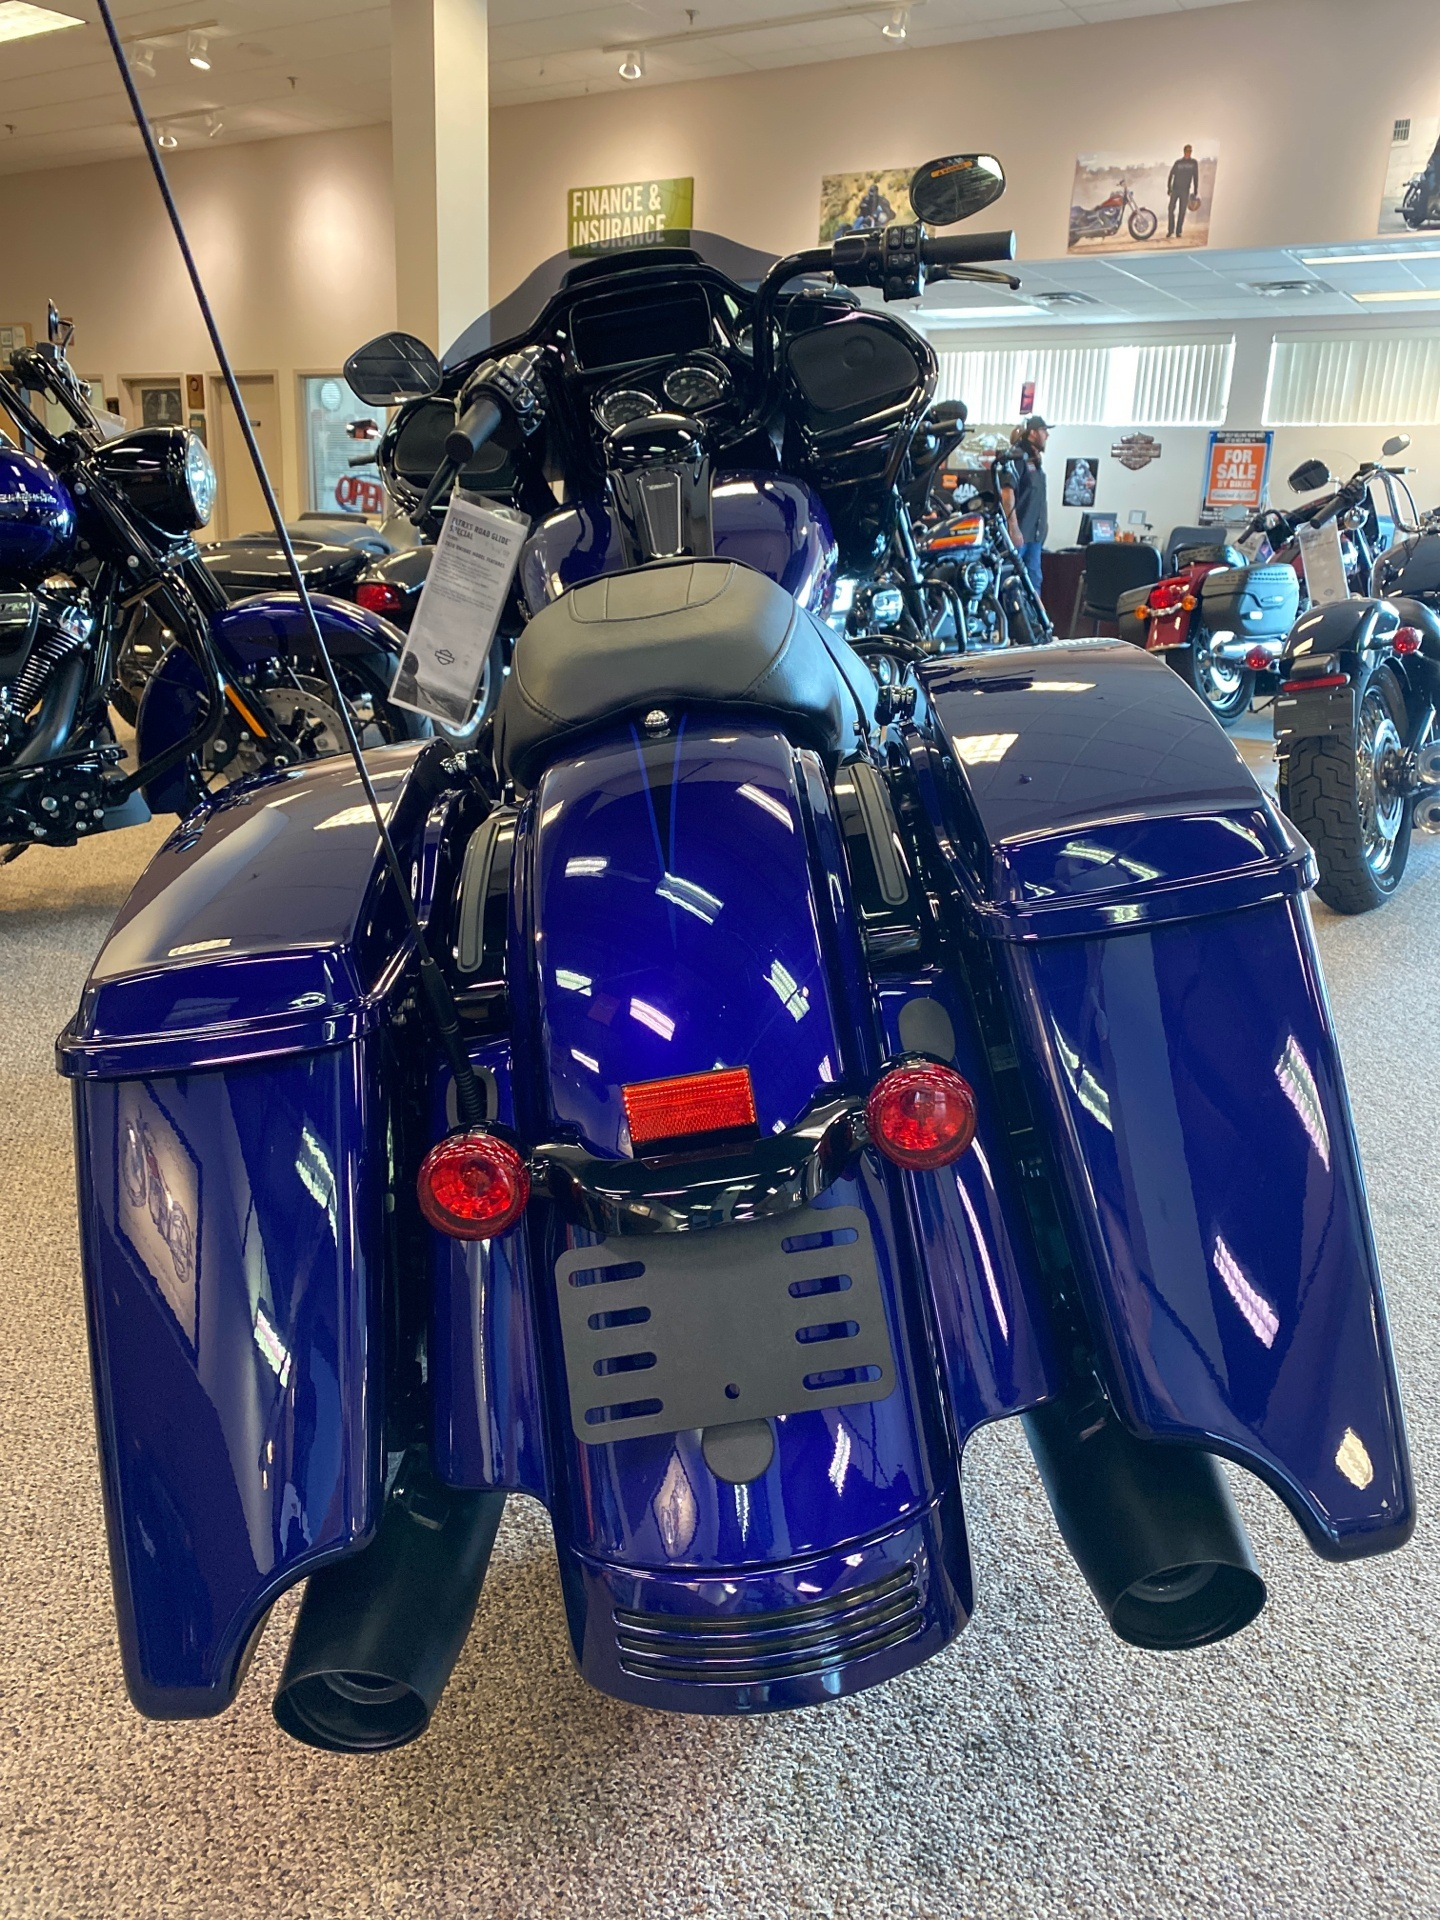 2020 Harley-Davidson Road Glide Special in Roanoke, Virginia - Photo 3